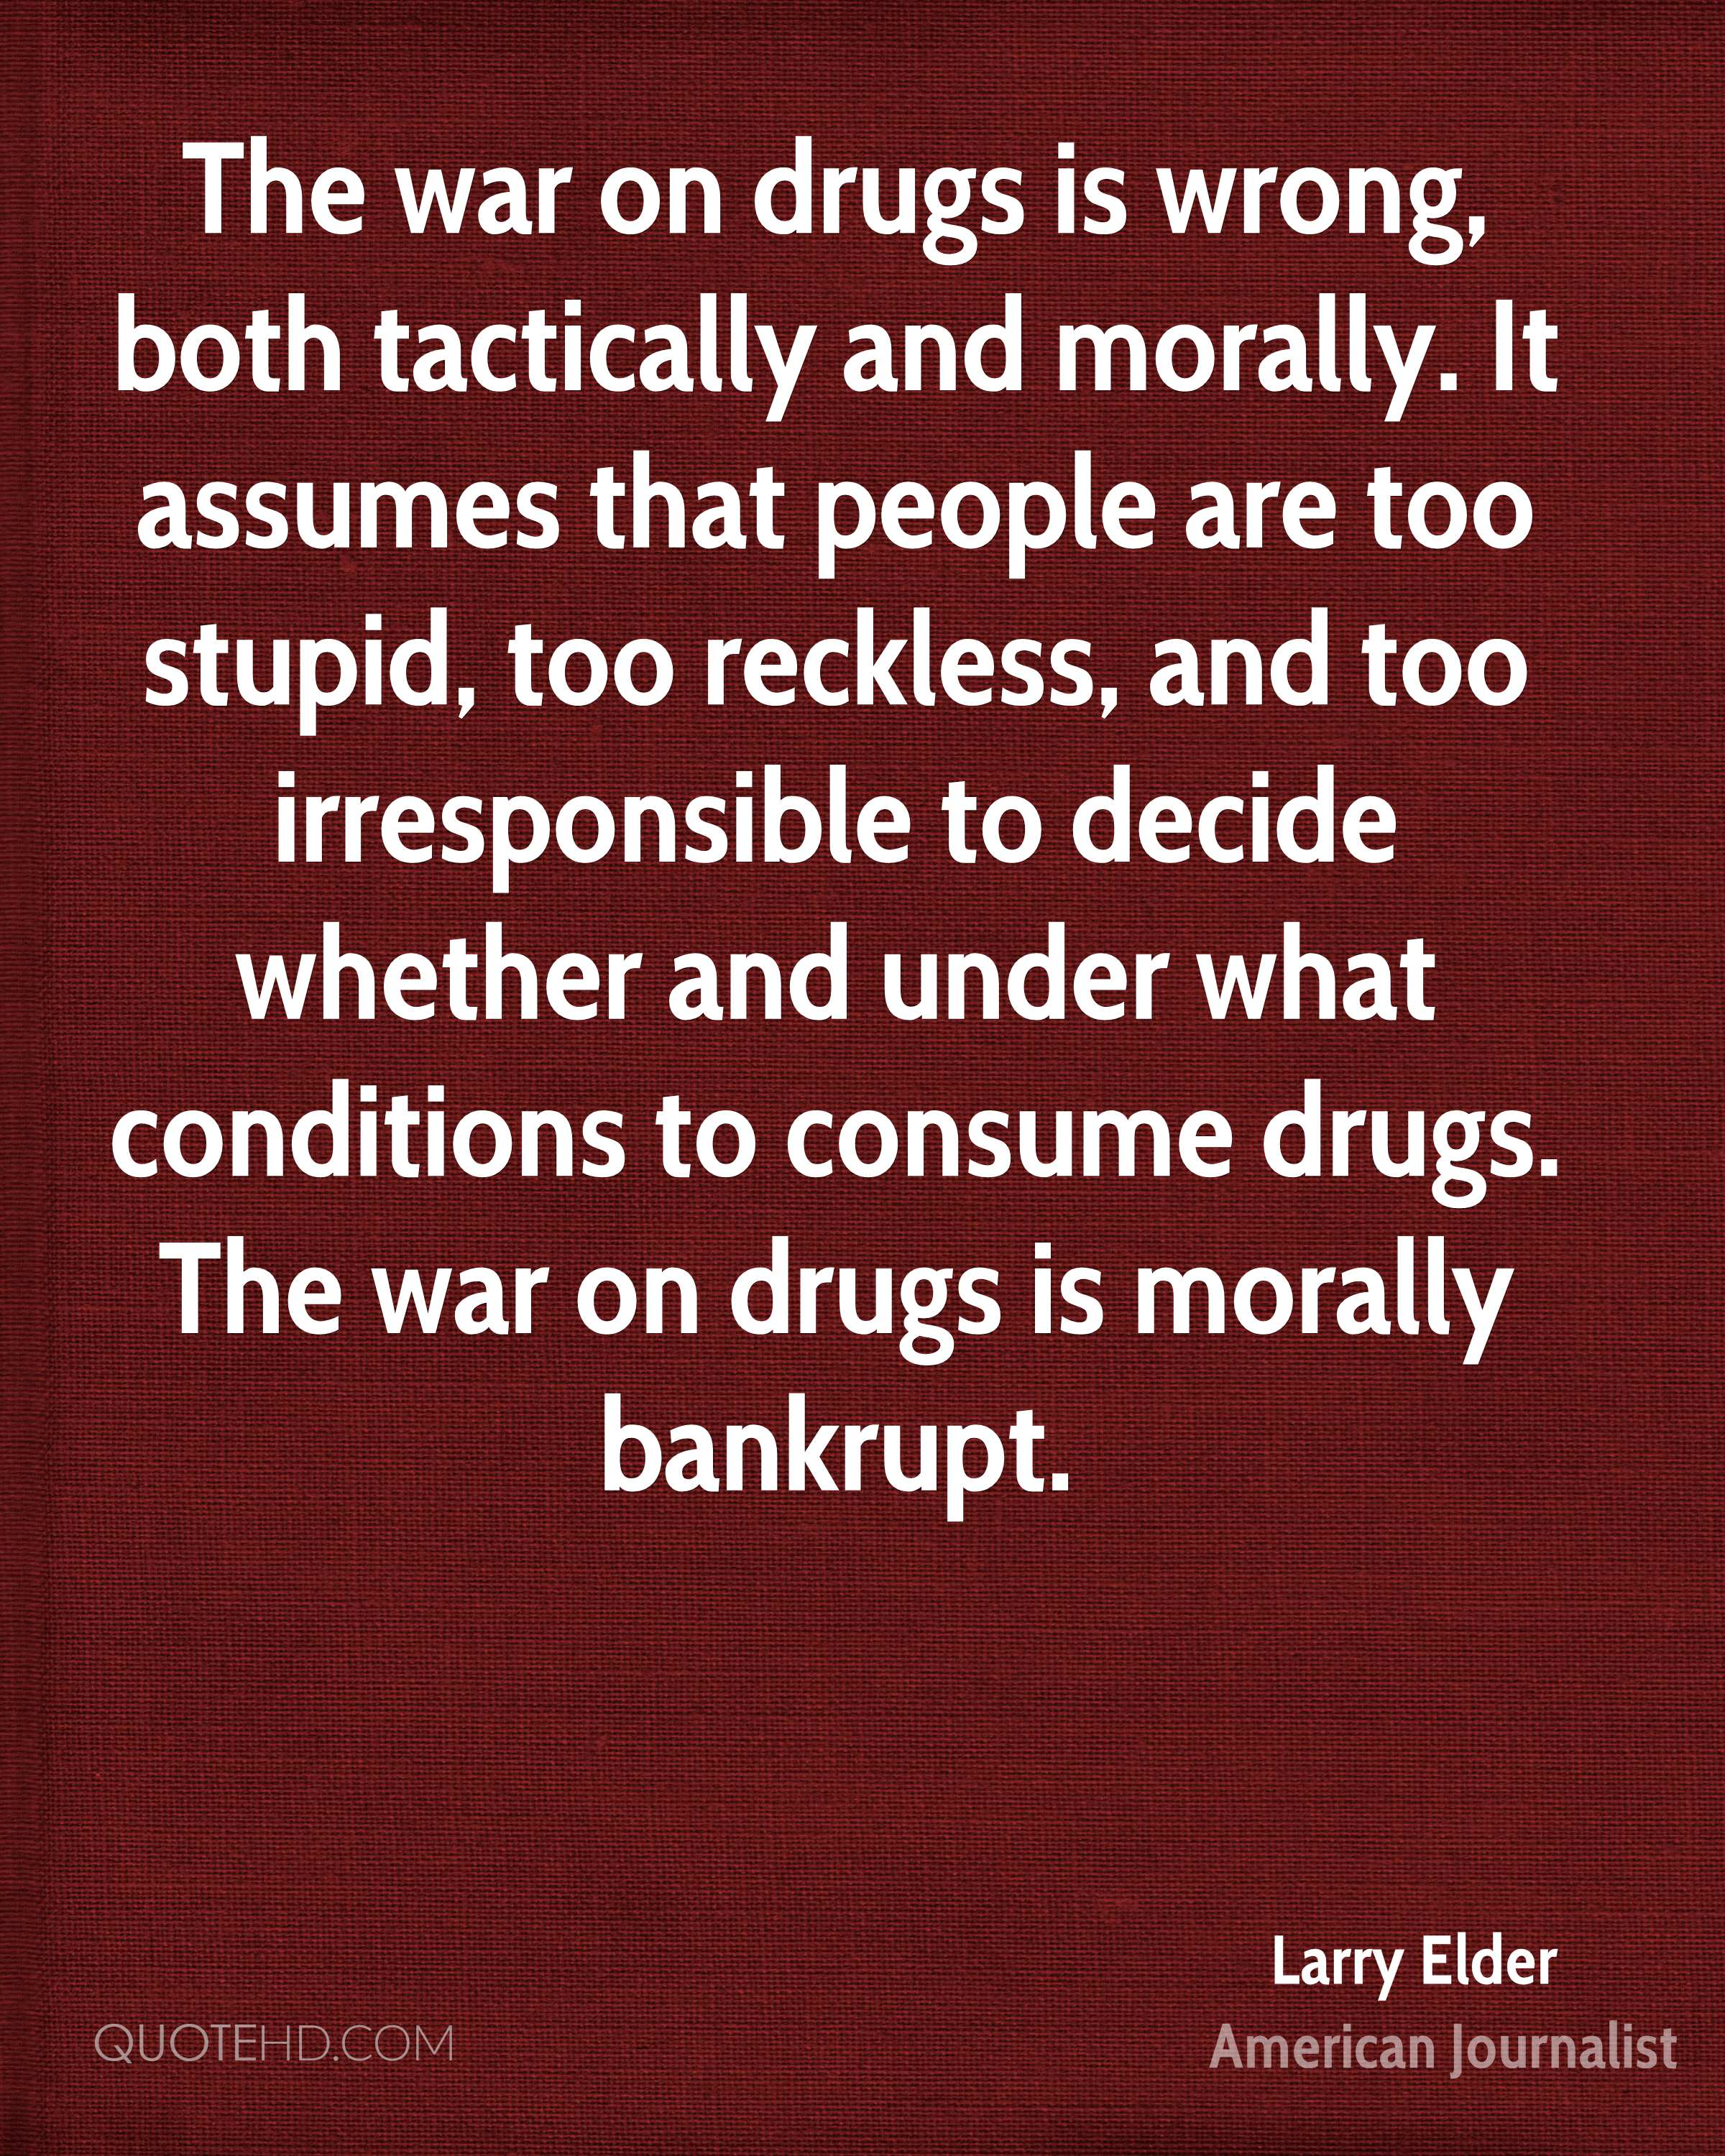 The war on drugs is wrong, both tactically and morally. It assumes that people are too stupid, too reckless, and too irresponsible to decide whether and under what conditions to consume drugs. The war on drugs is morally bankrupt.